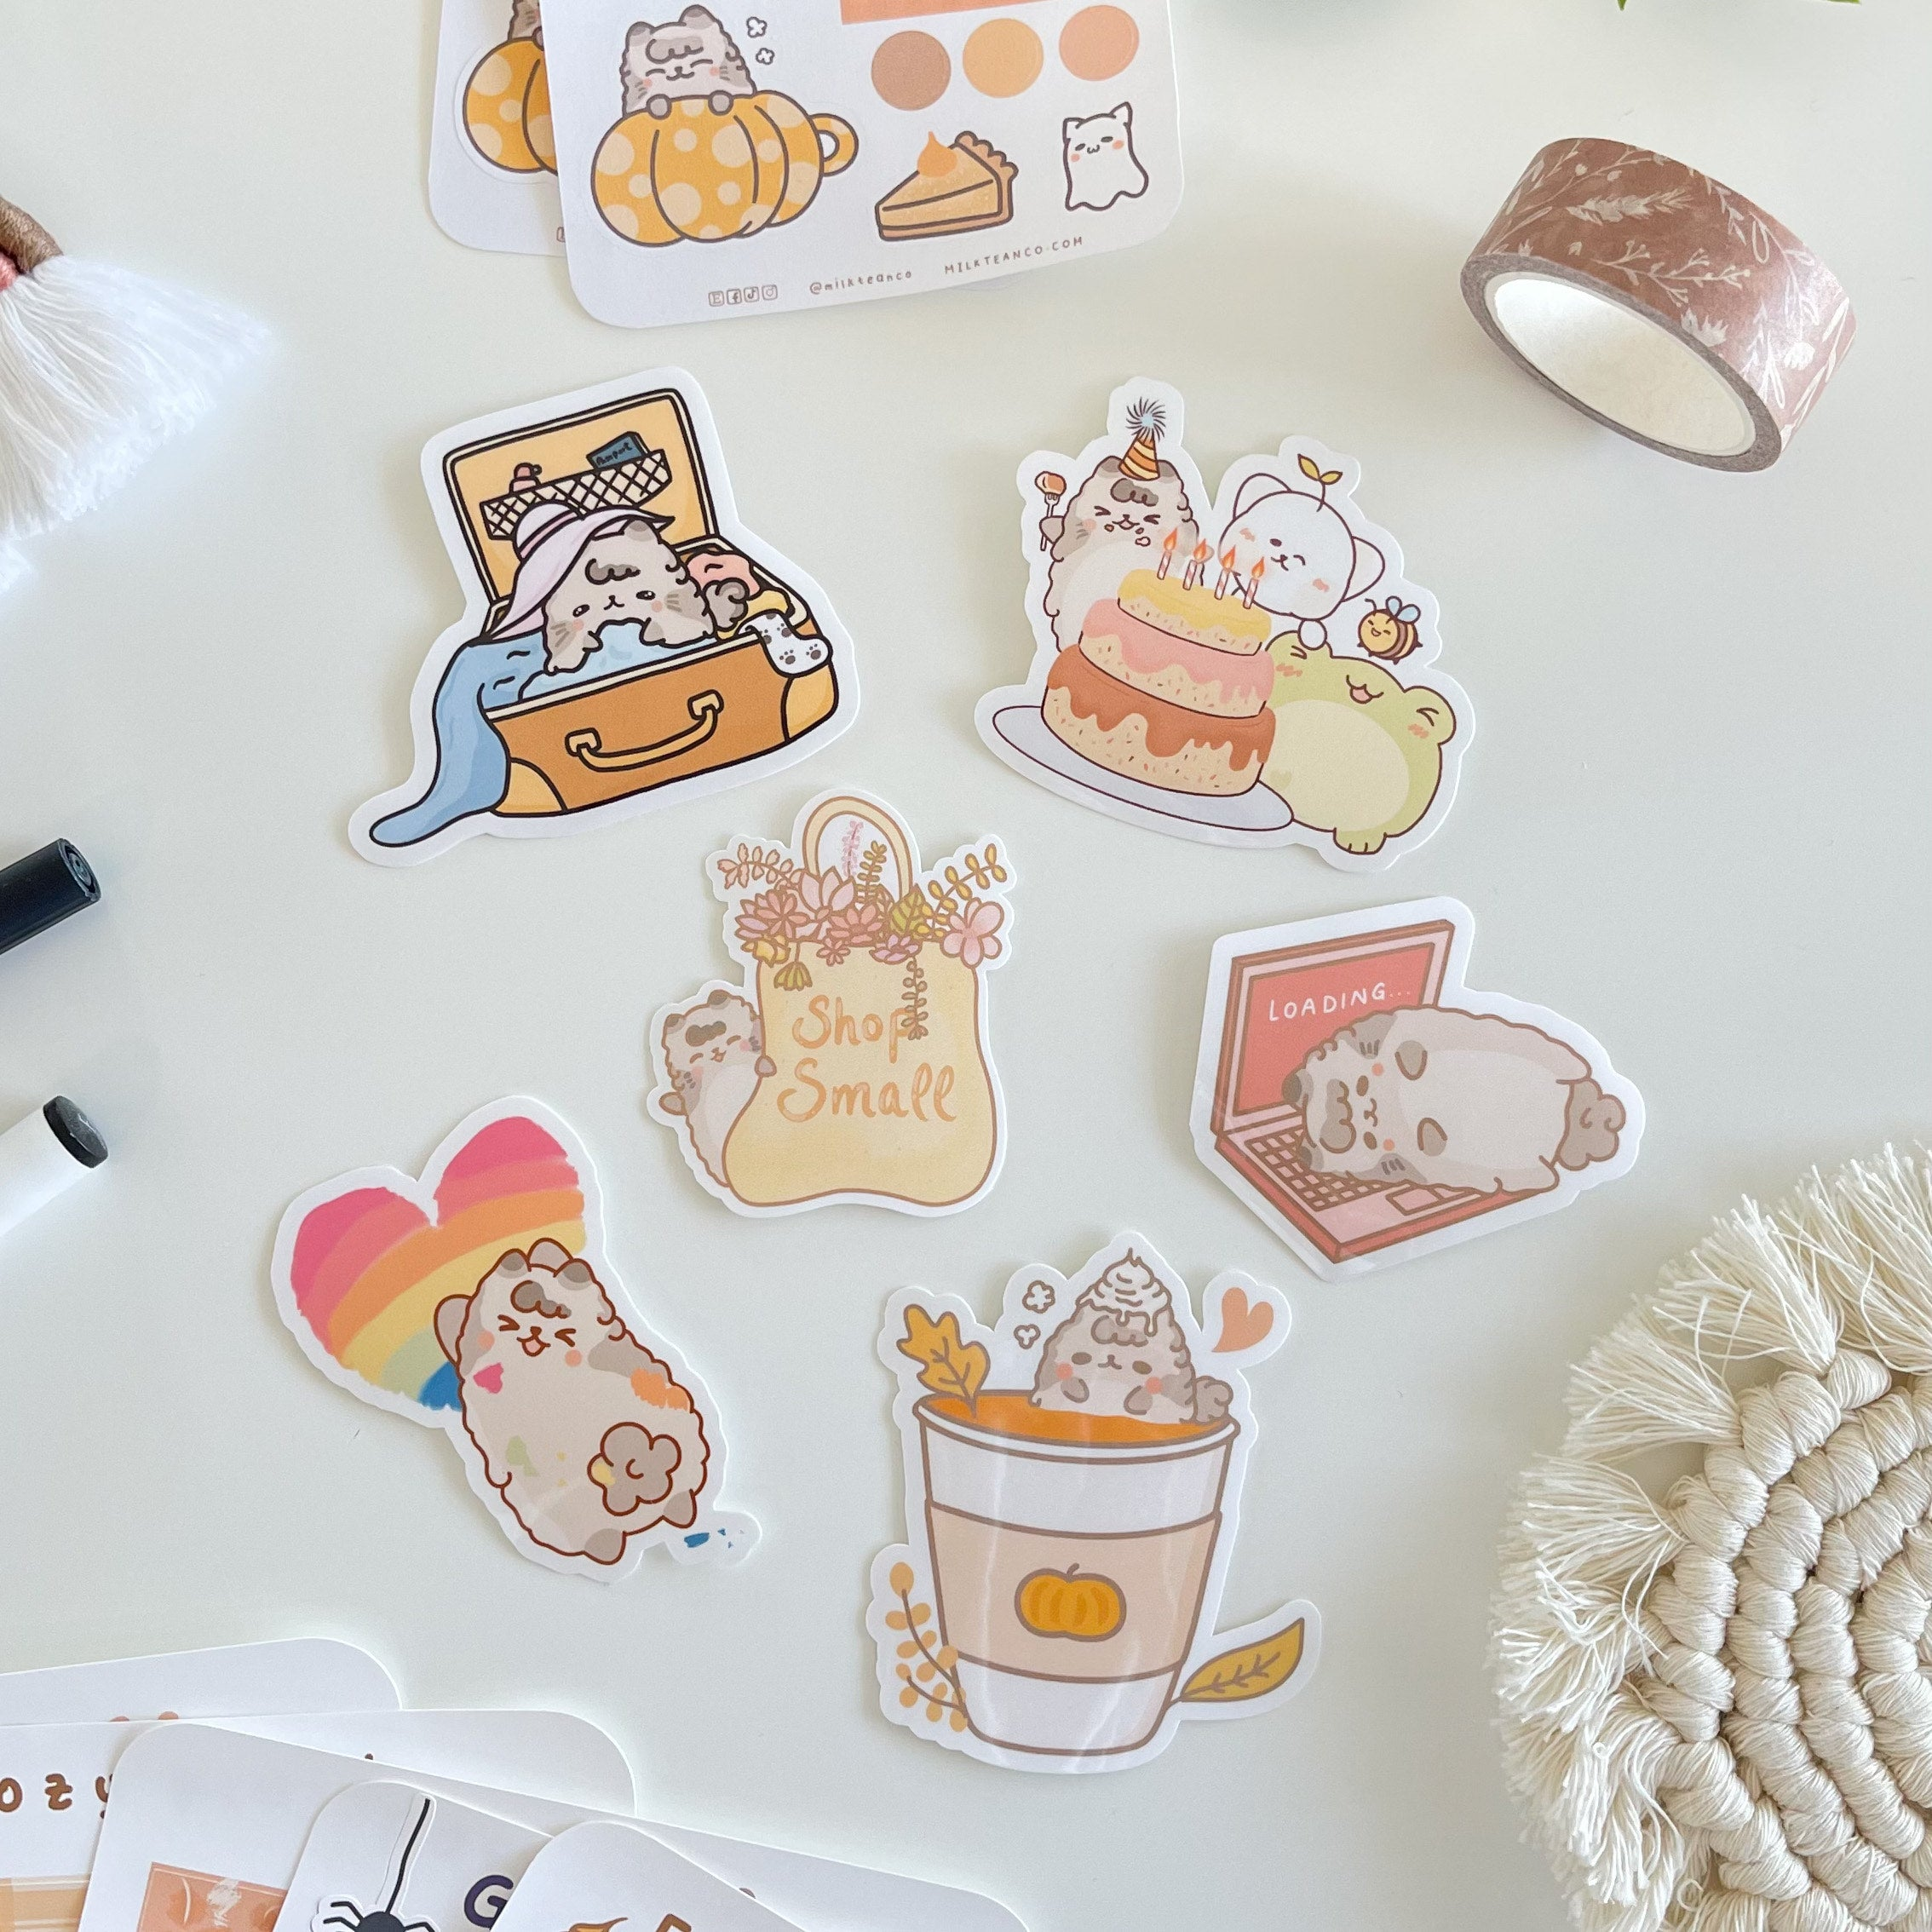 A sticker sheet of cute illustrated cats